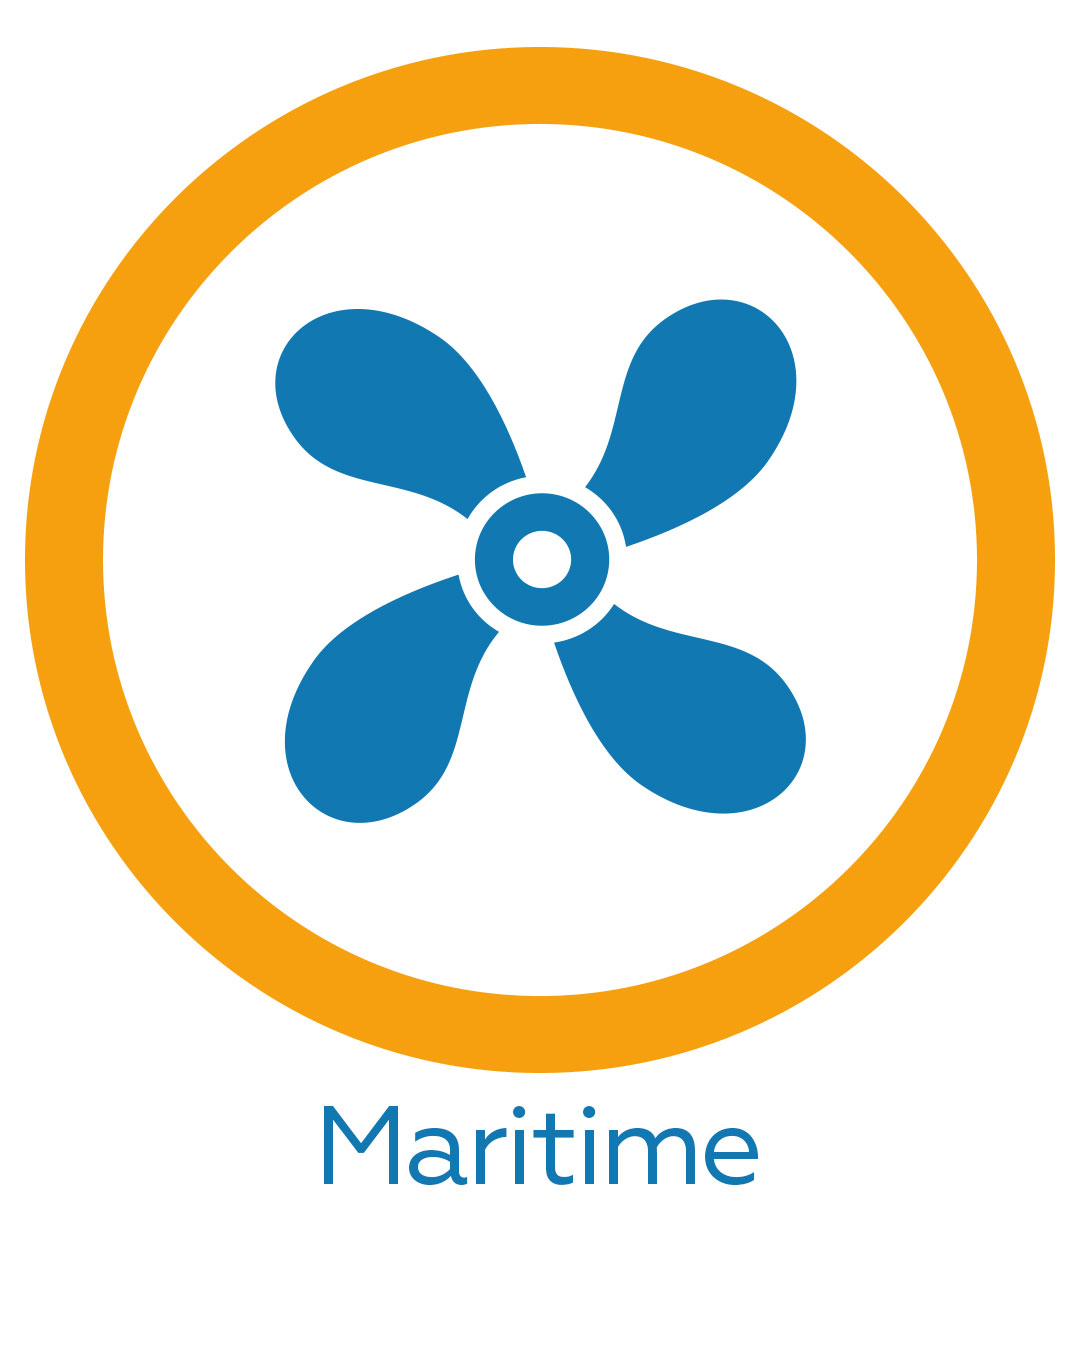 Hire maritime engineers